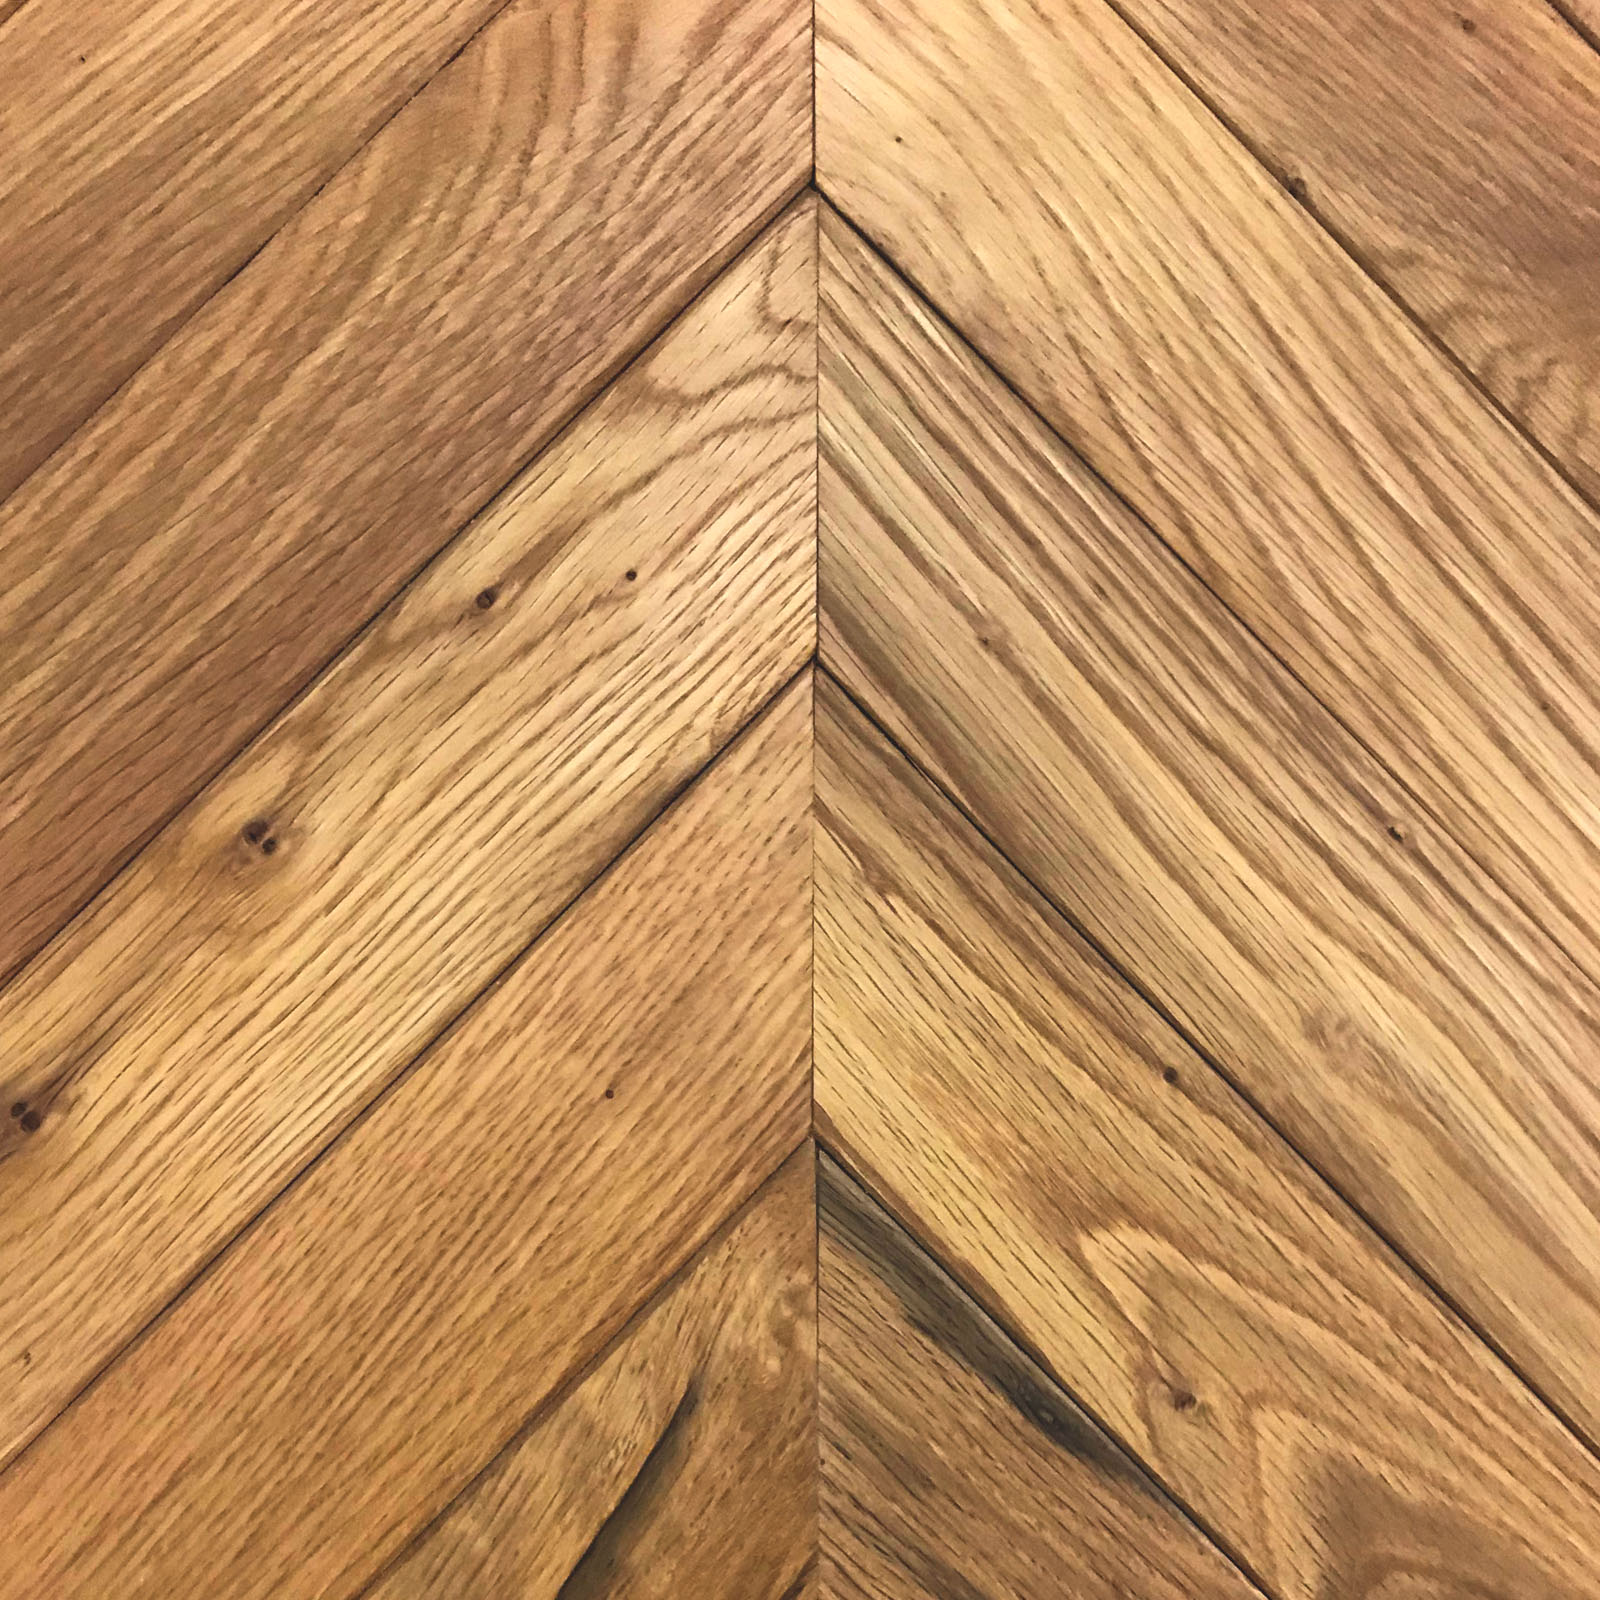 Chevron Oak Wood Flooring - Wellborn + Wright